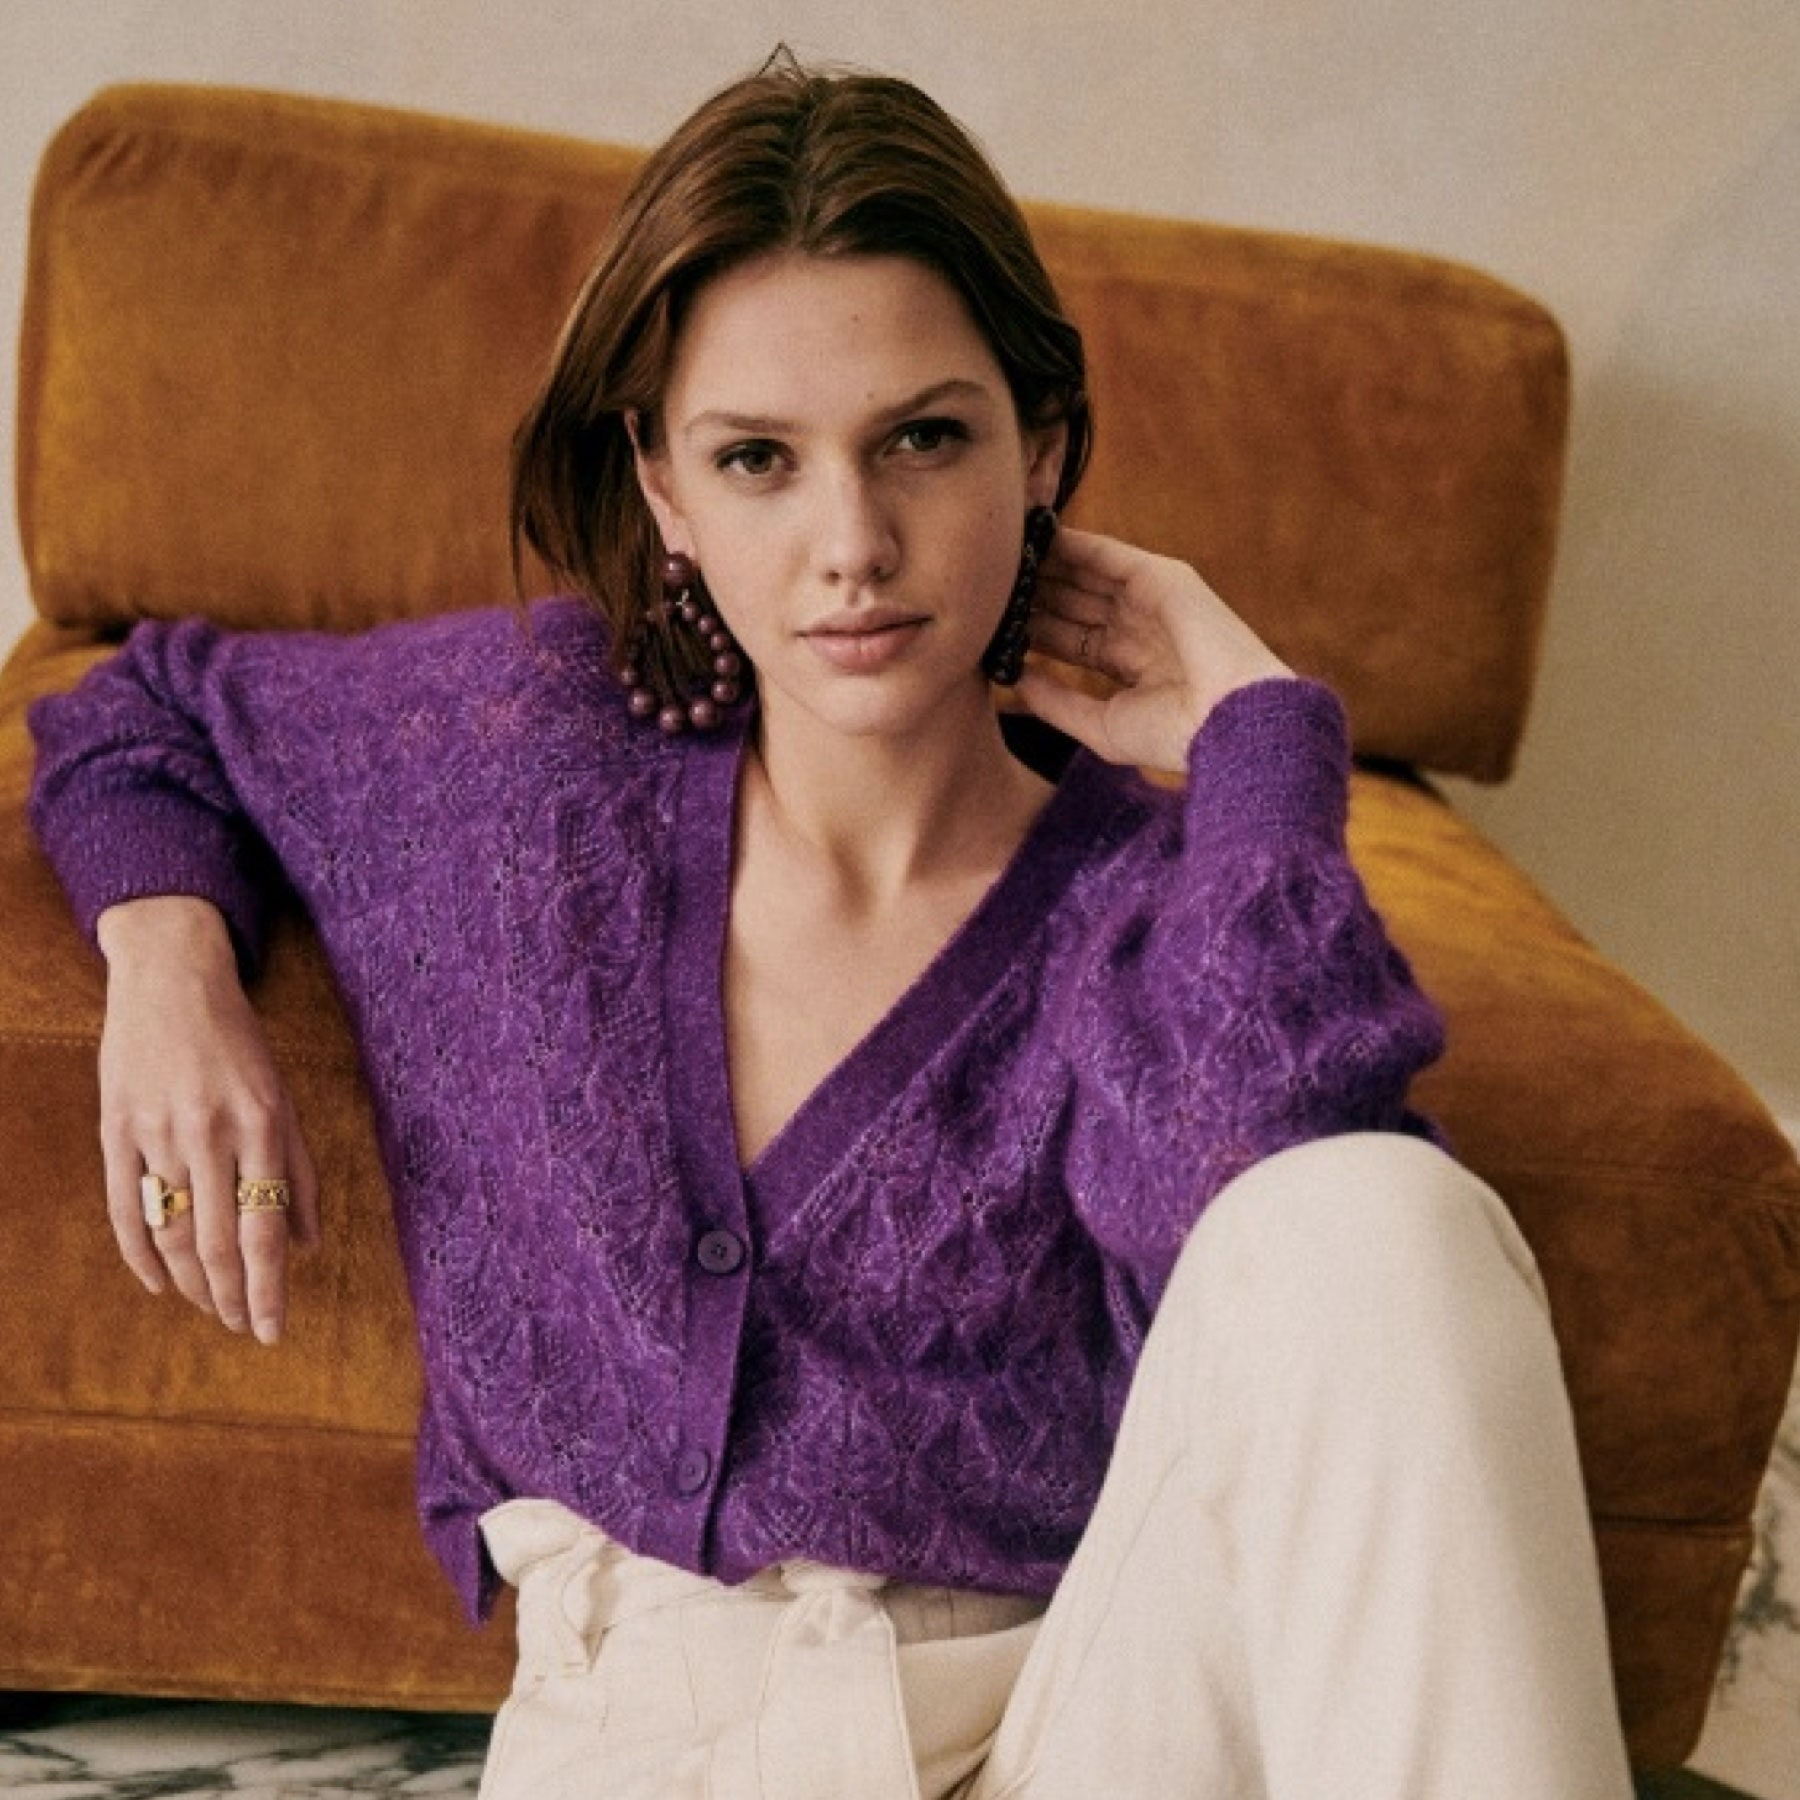 model wearing purple cardigan